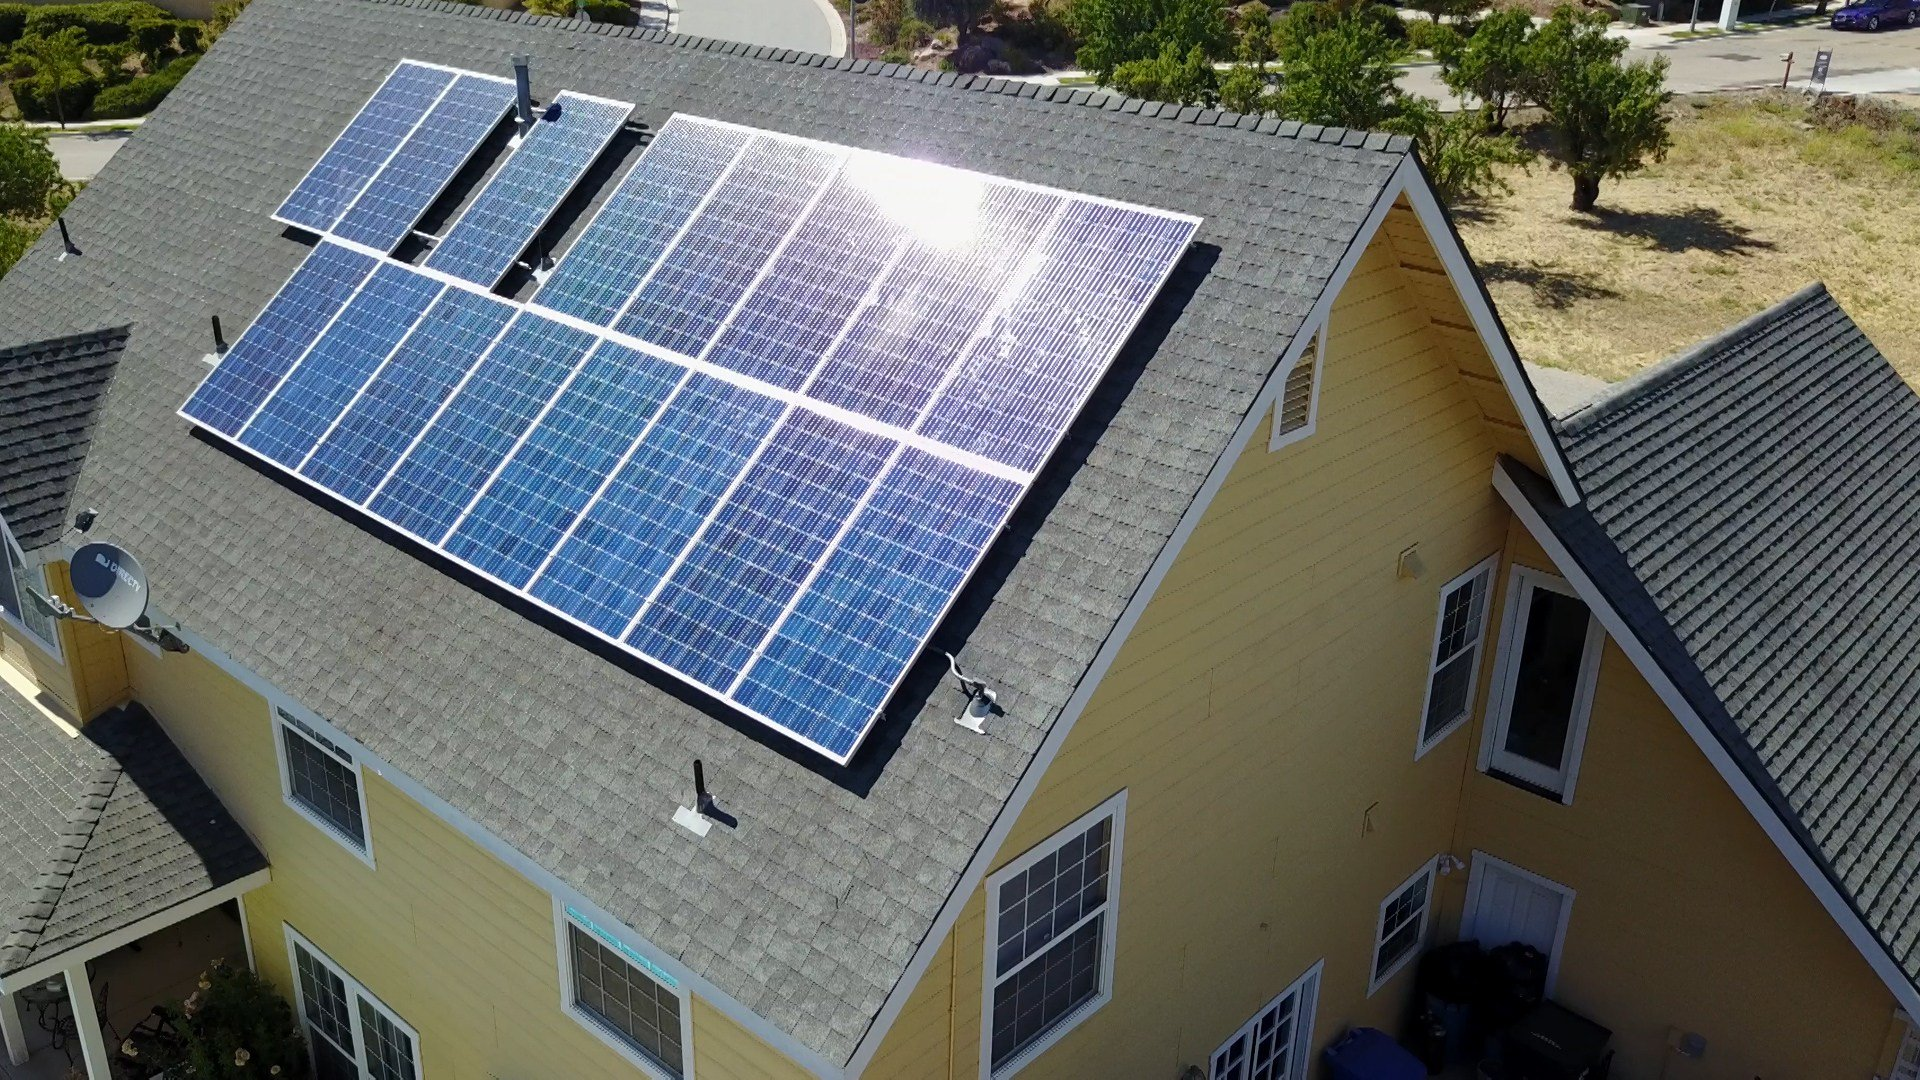 New California homes required to have solar panels